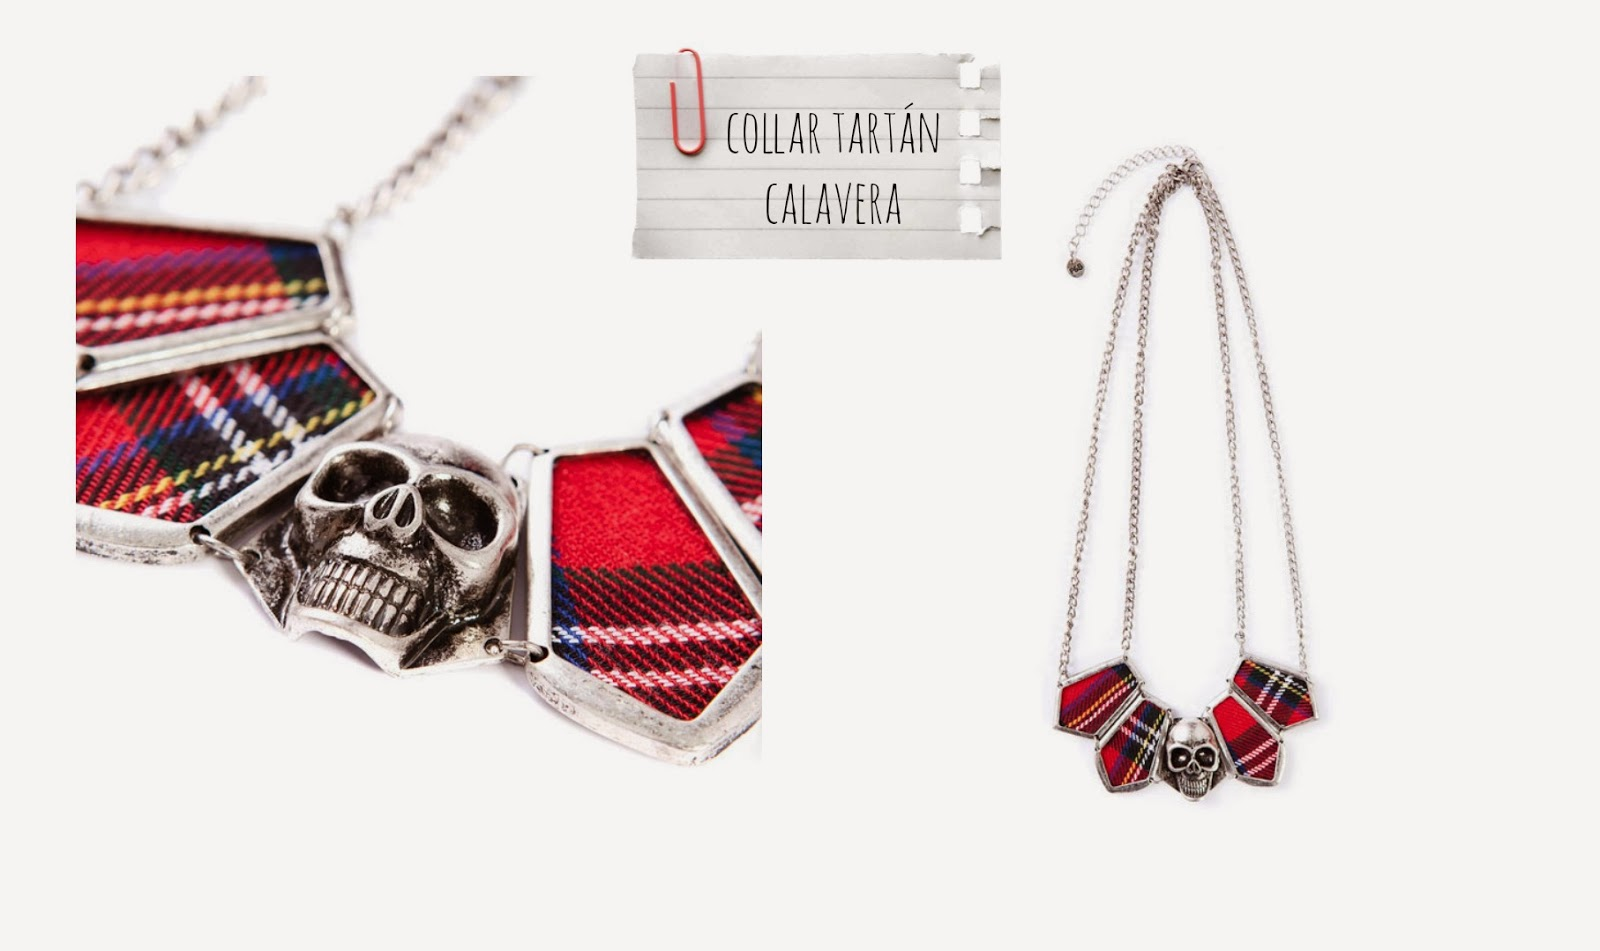 Collar Tartán Calavera - Pull and Bear